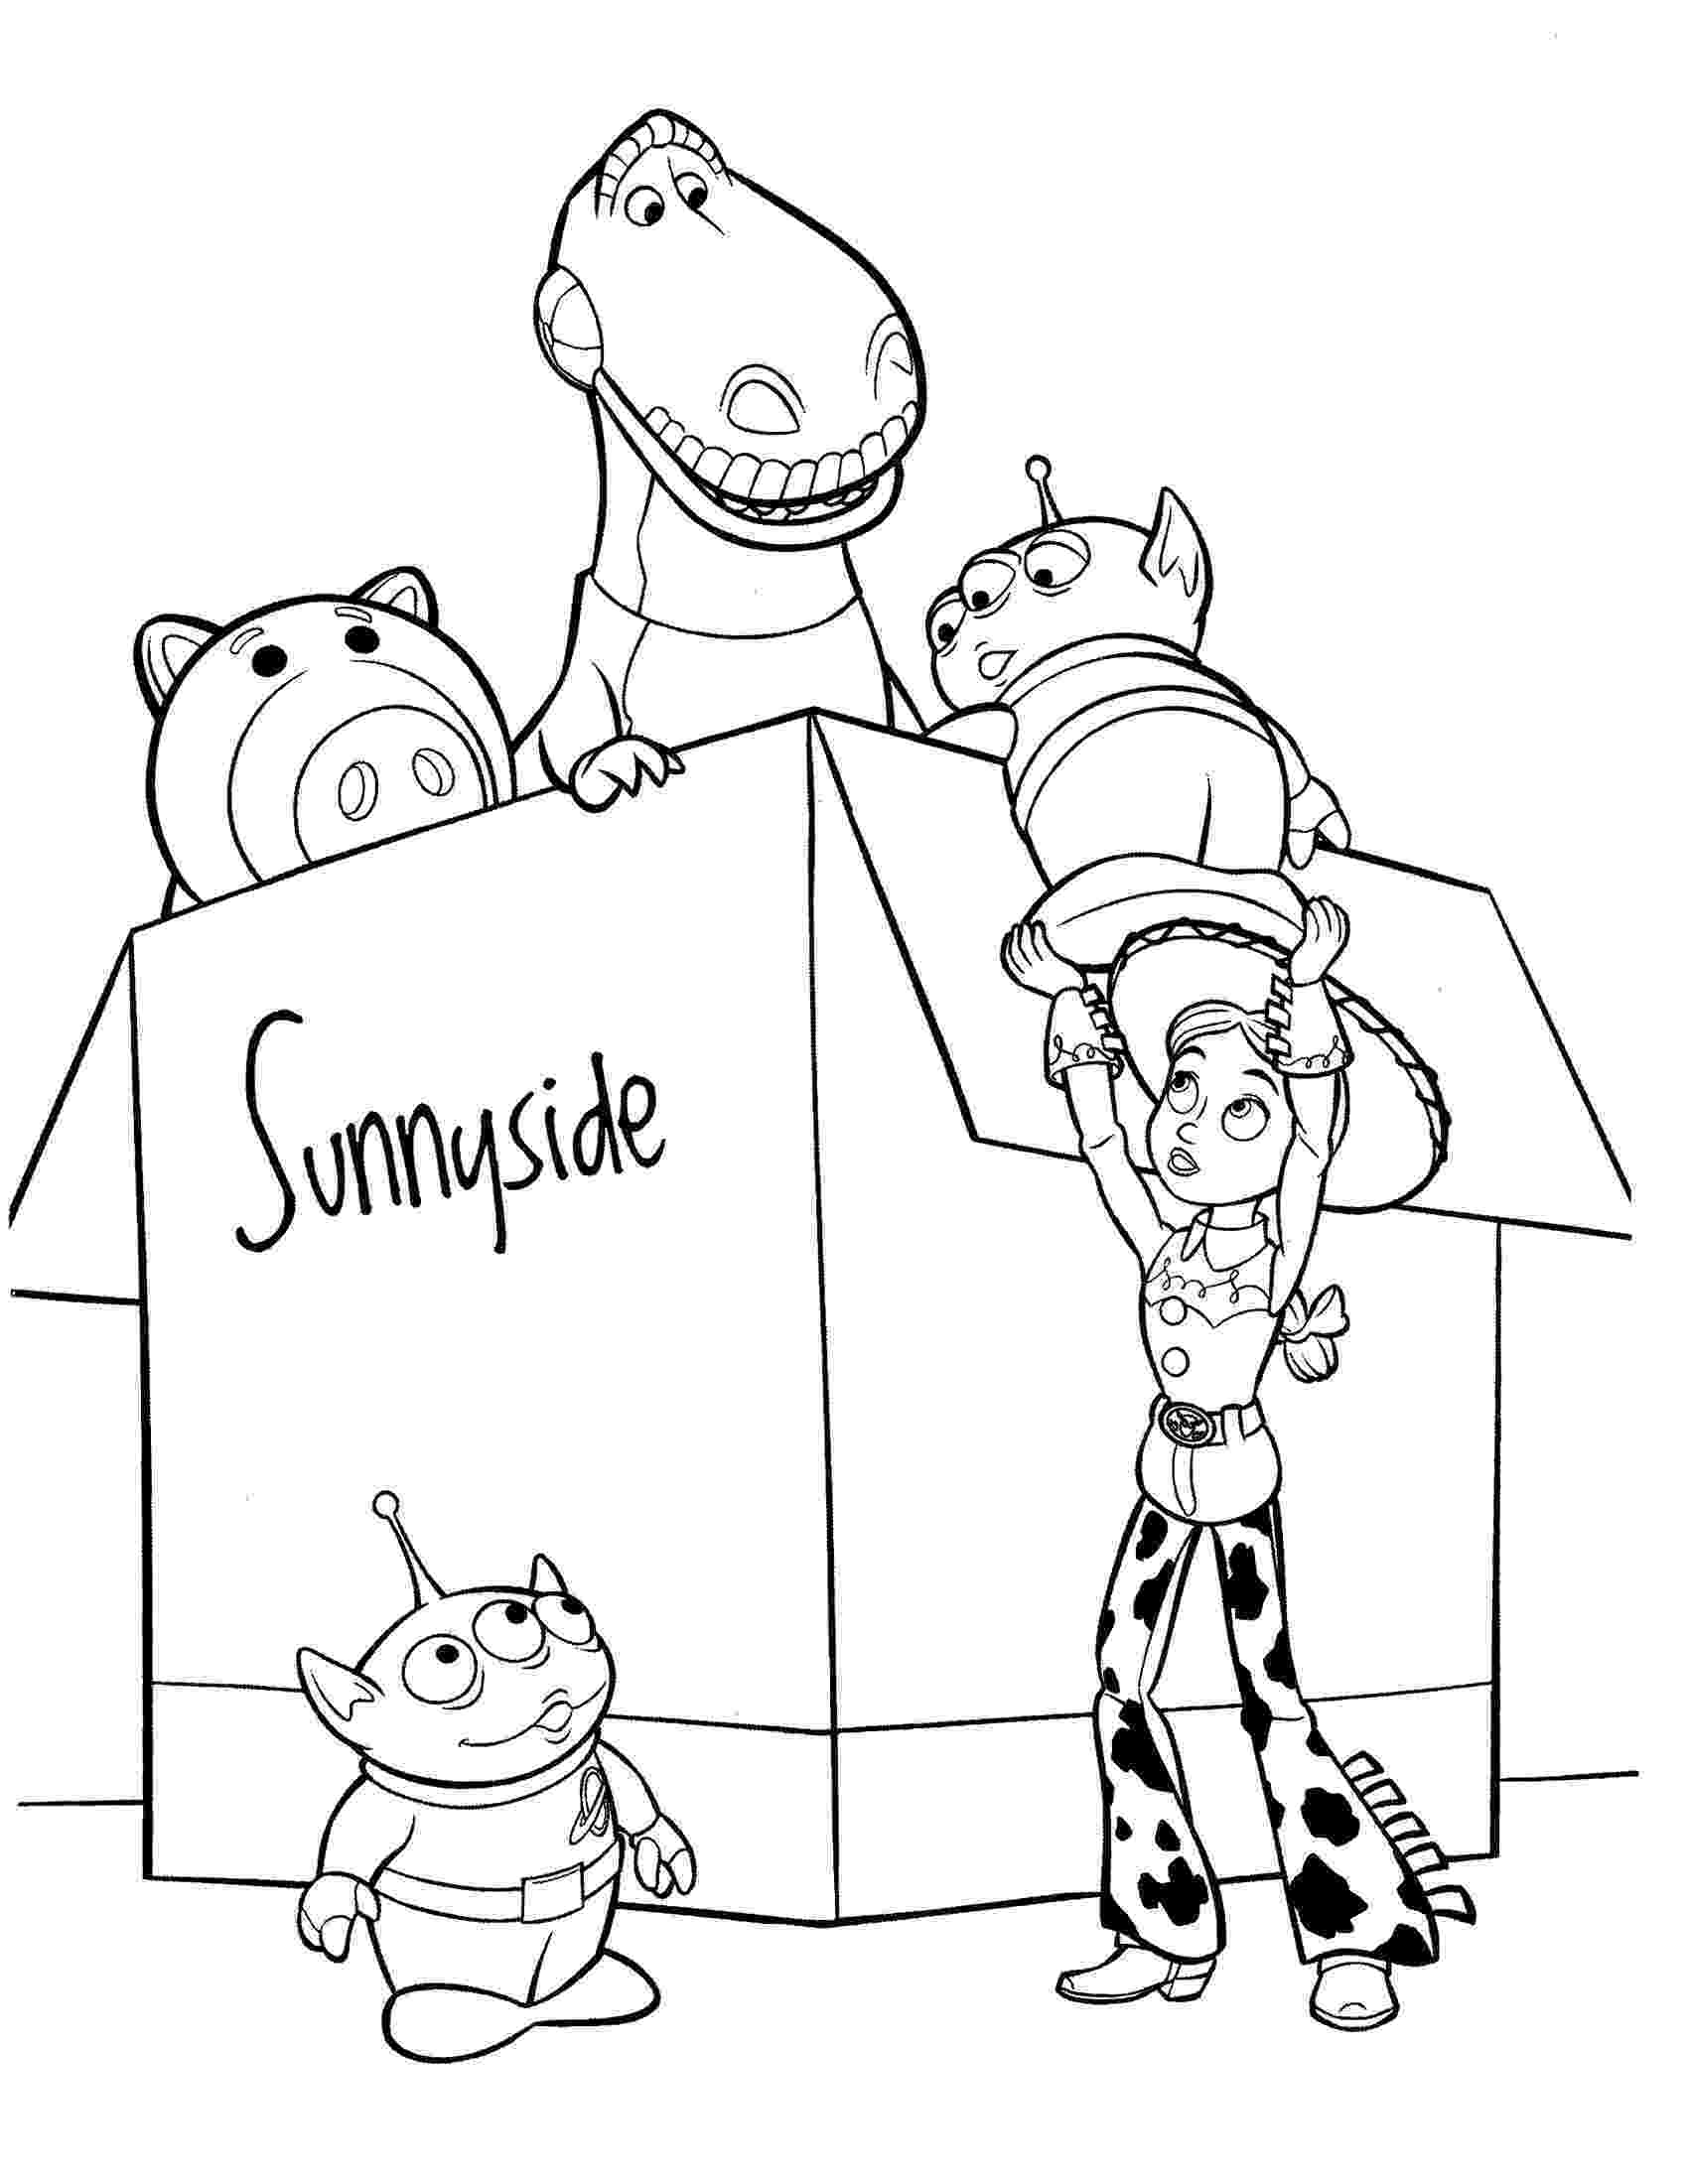 toy store coloring pages toy story free printable coloring pages puzzles and coloring toy store pages